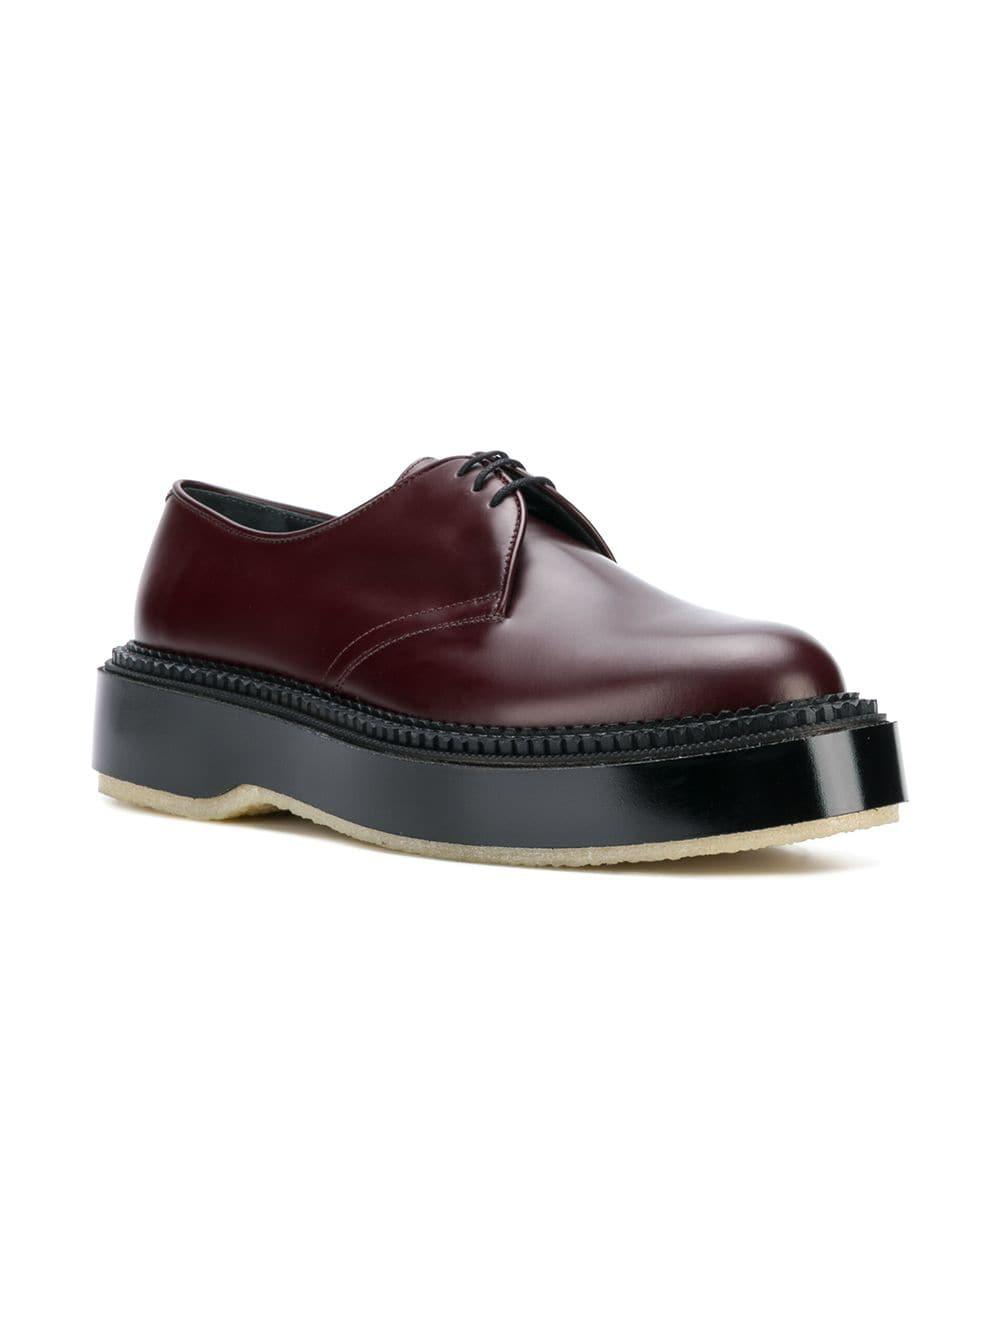 ec49d4666791 Undercover Platform Oxford Shoes in Red for Men - Lyst